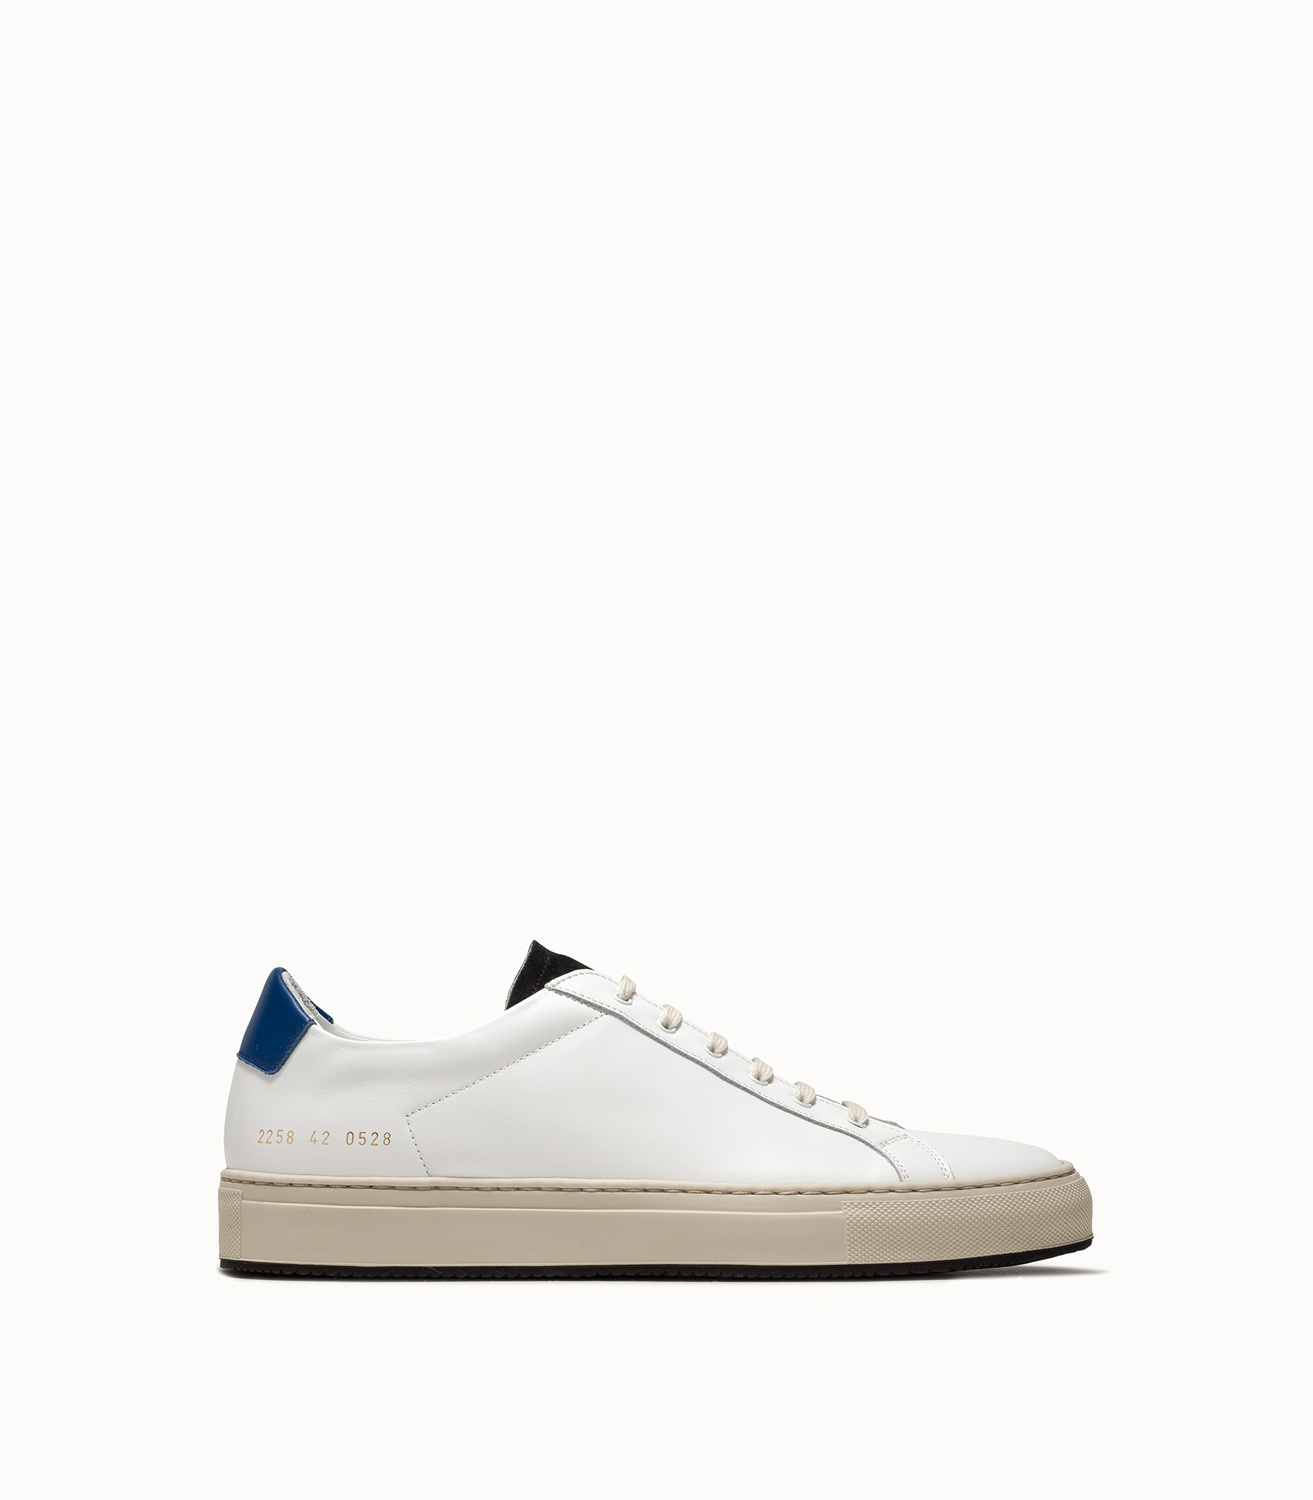 COMMON PROJECTS RETRO LOW SPECIAL